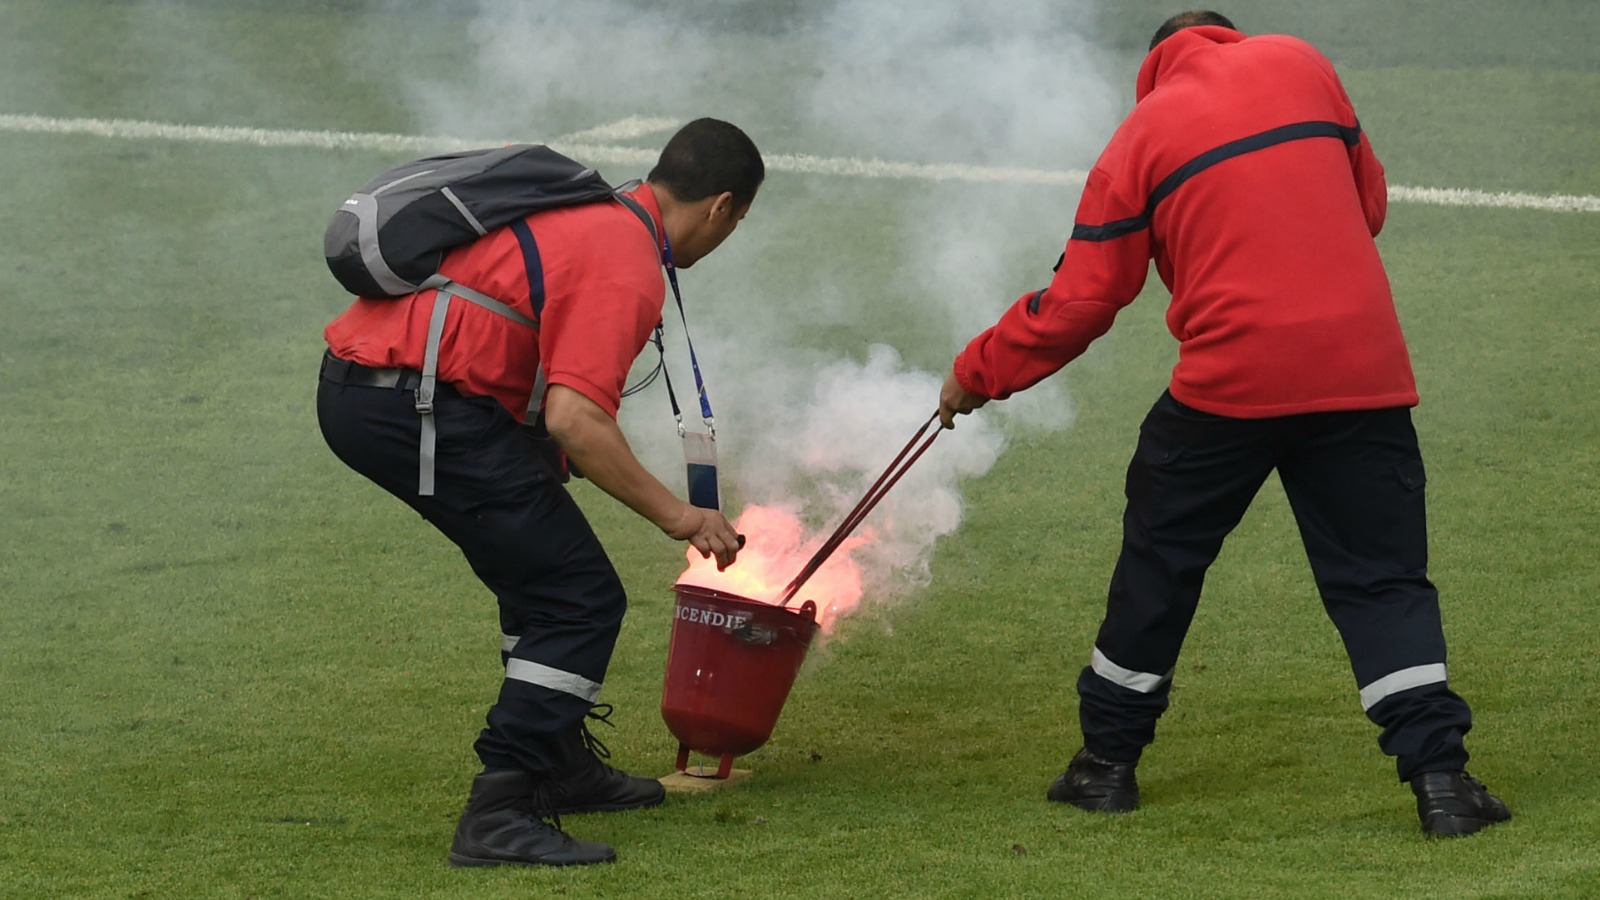 Fans throw flares, explosive on pitch at Euro 2016